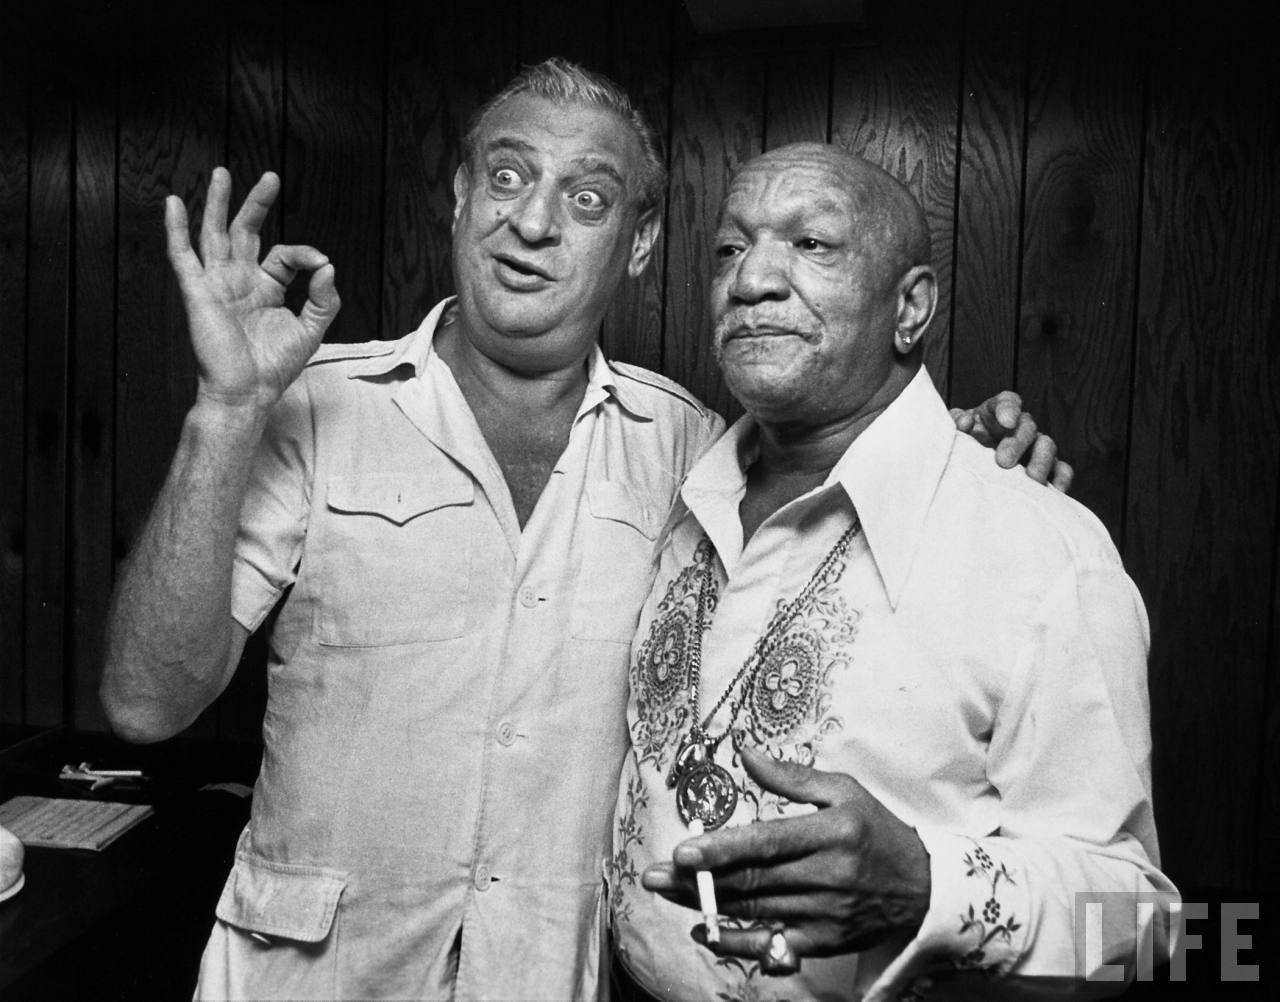 One of the greatest comedians of all time, Rodney Dangerfield. A personal hero of mine.